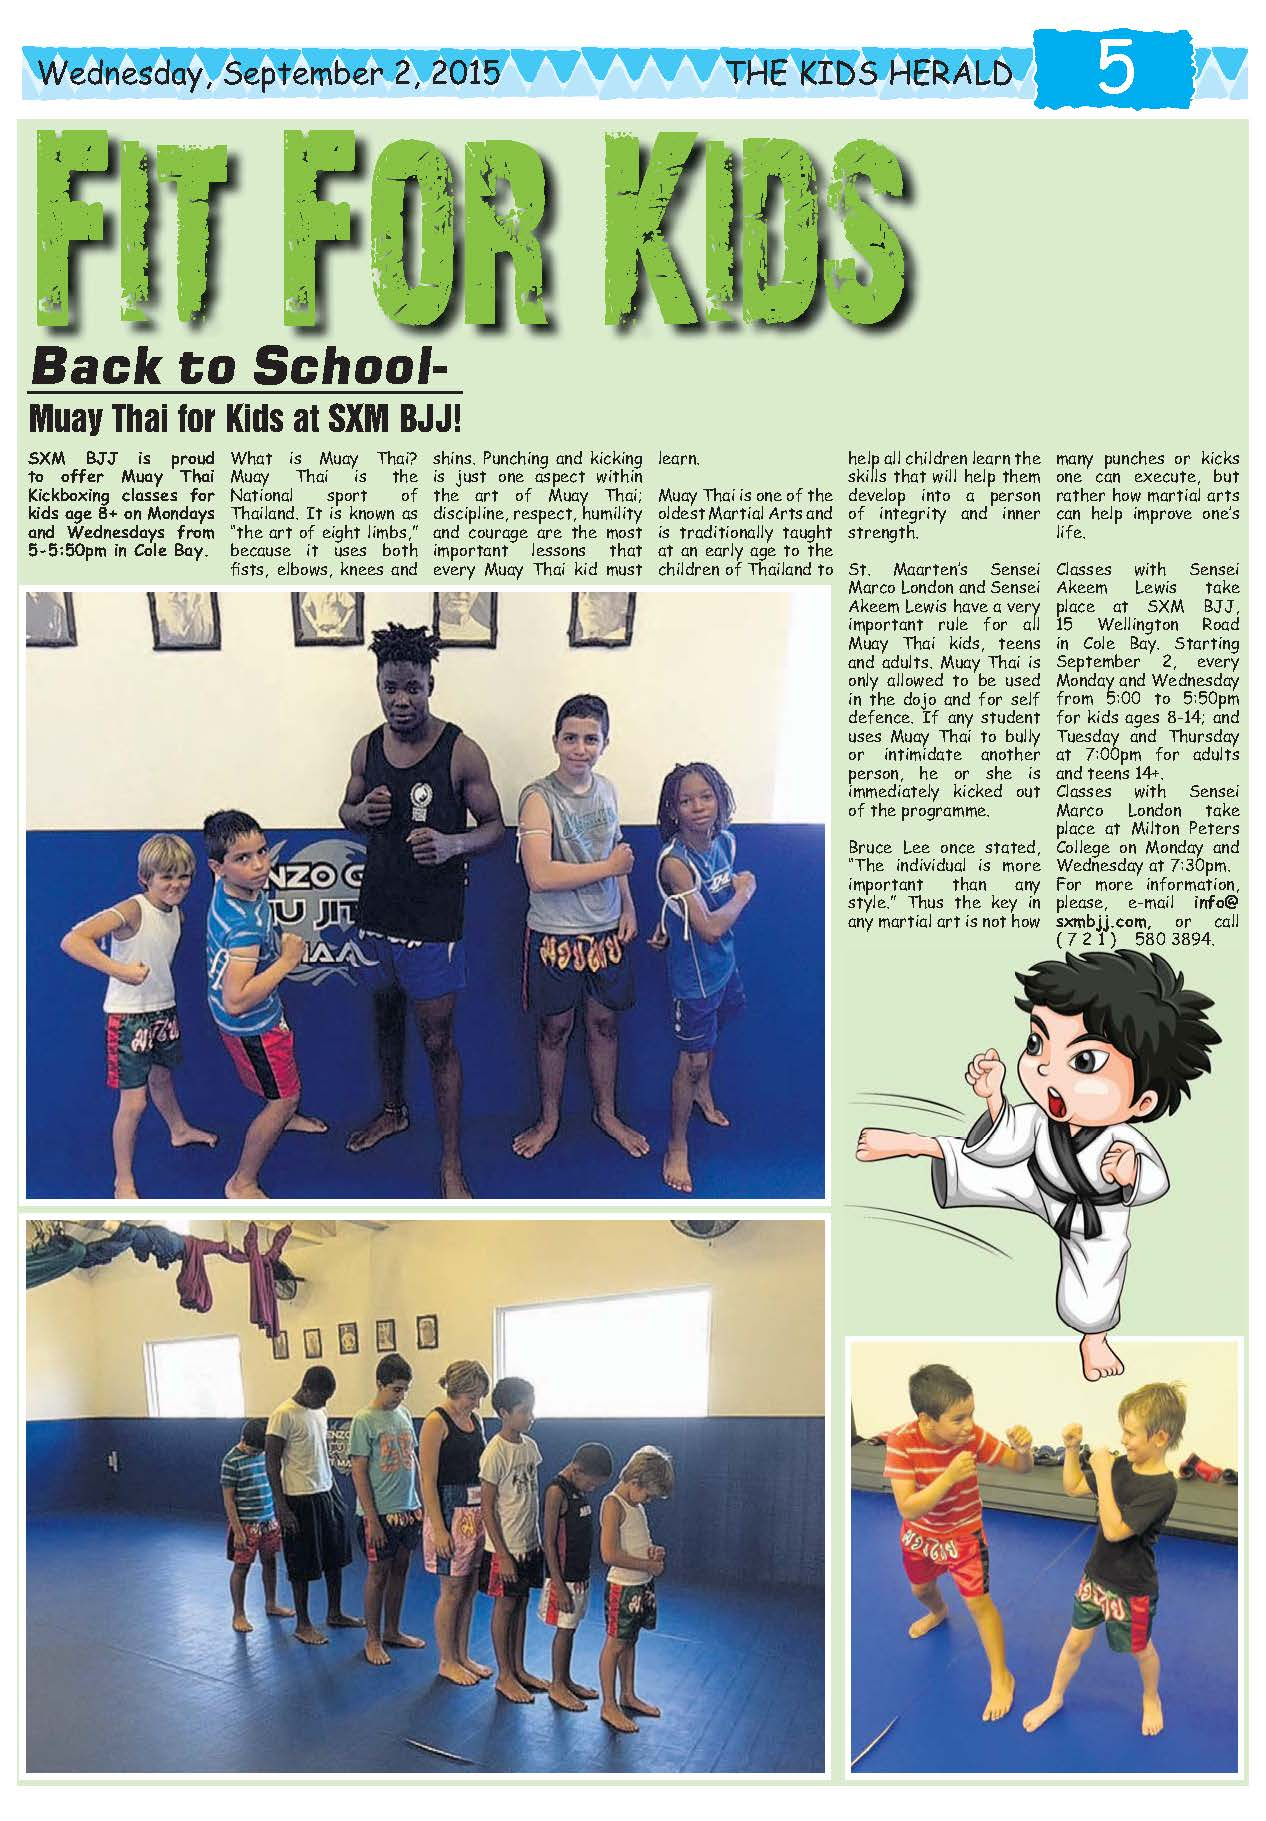 Press Muay Thai Kids Herald Sep 2 2015.jpg